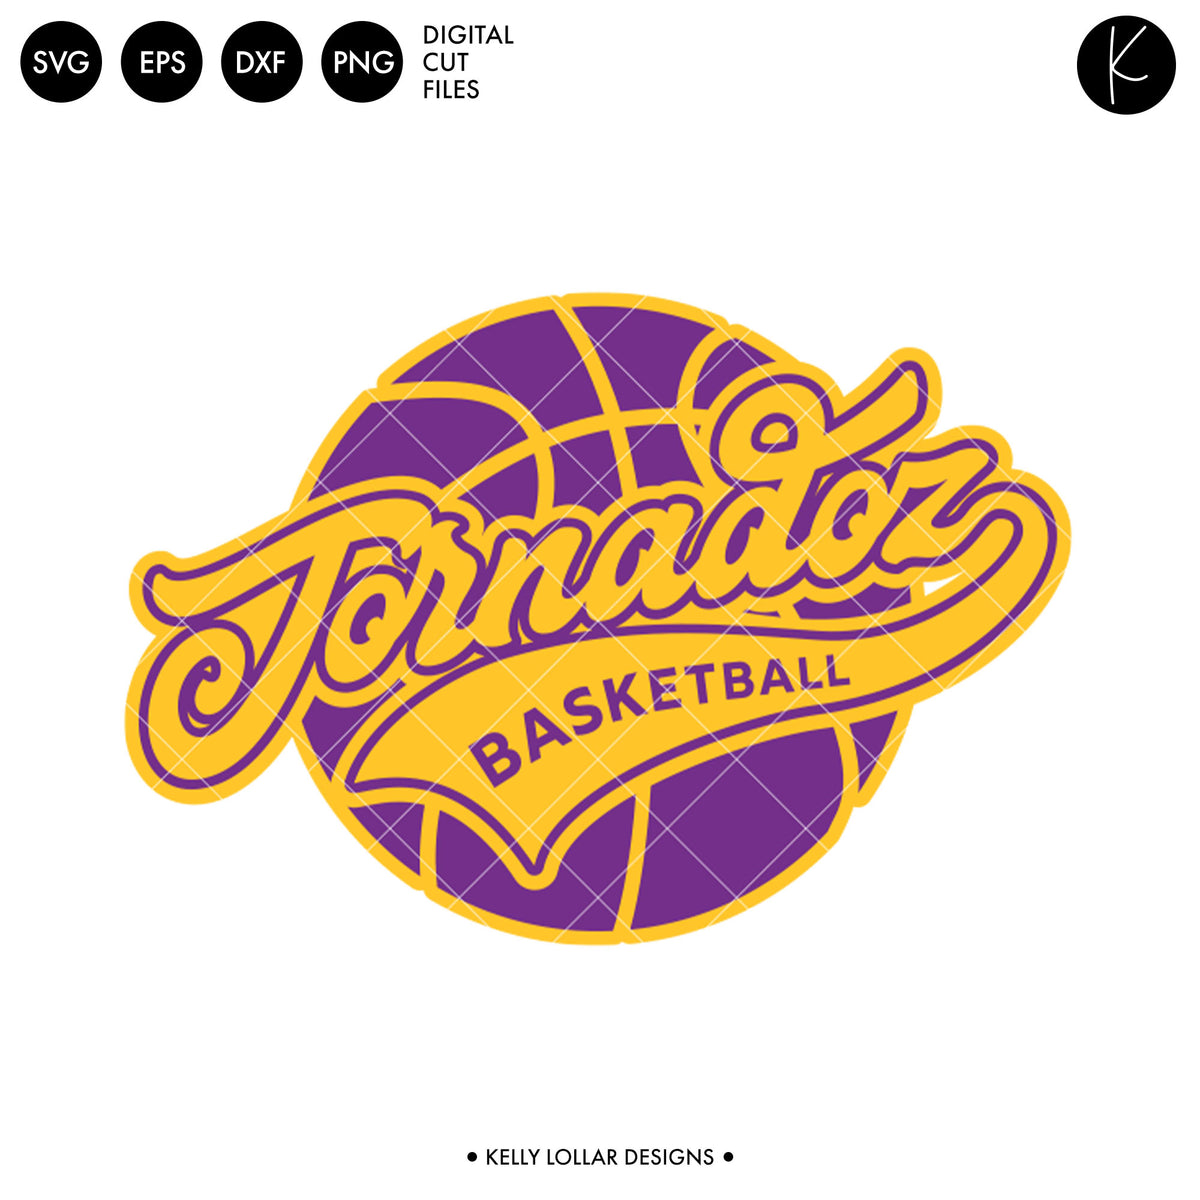 Tornadoz Athletic Script Basketball | SVG DXF EPS PNG Cut Files